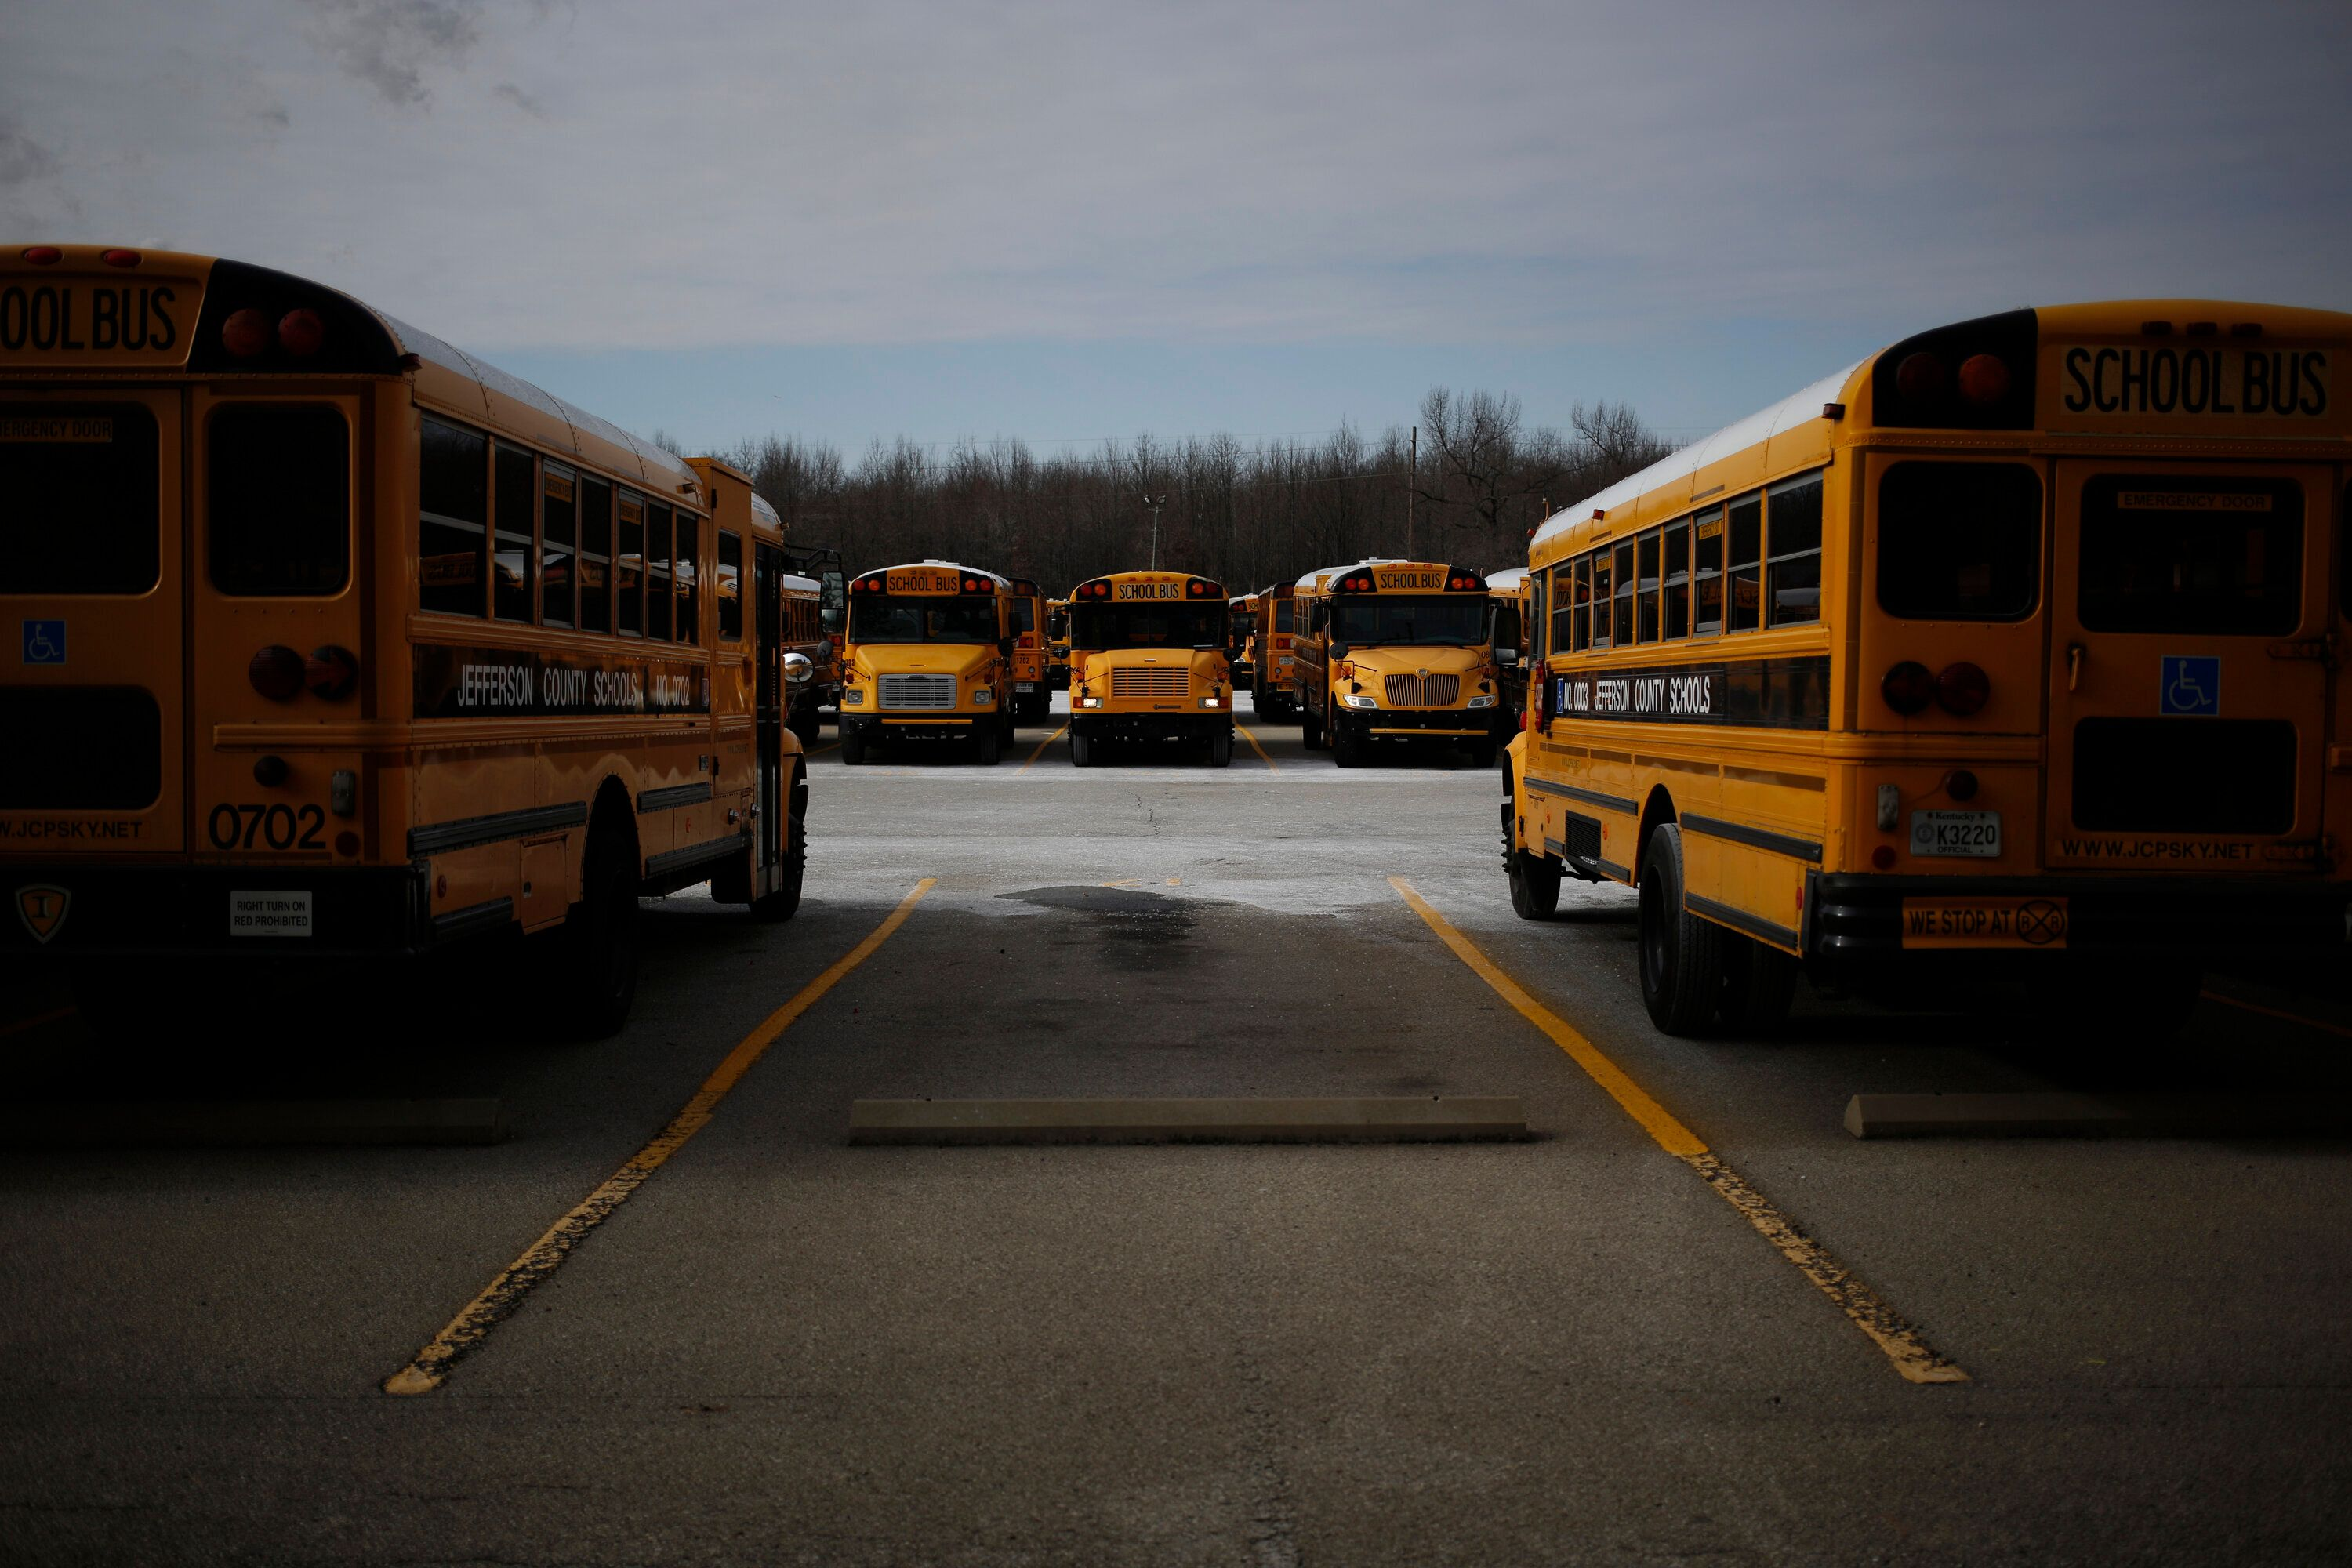 School buses at a compound for the Jefferson County Public Schools.